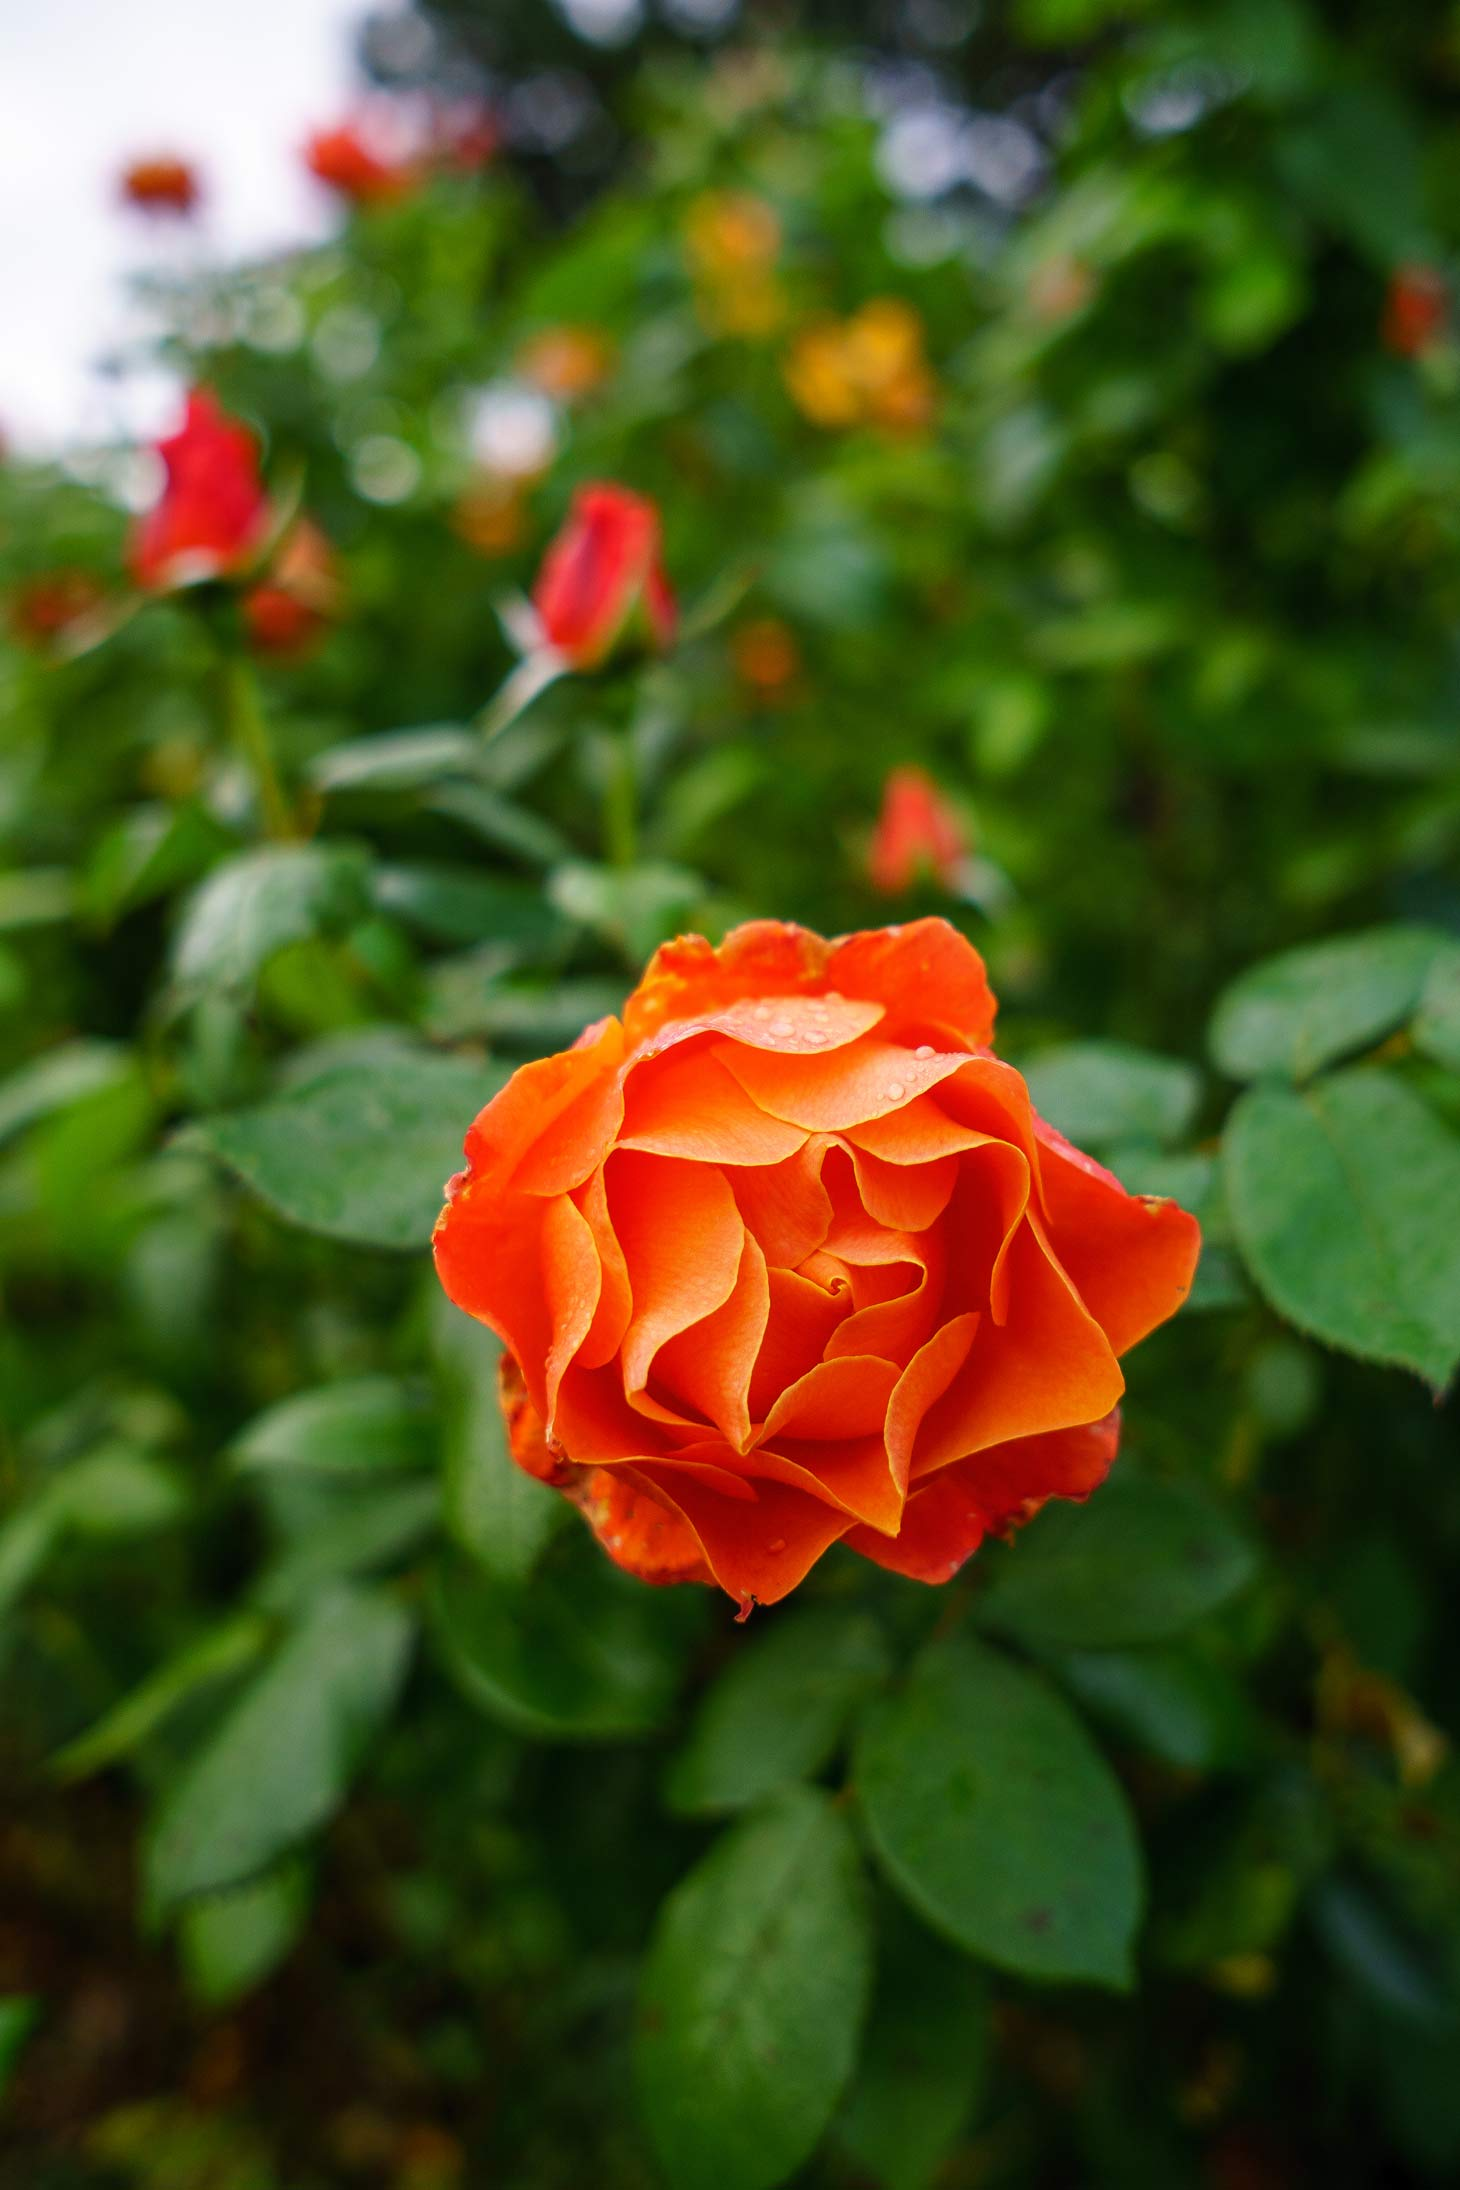 Coral colored rose in The Green or Tralee Town Park Rose Garden